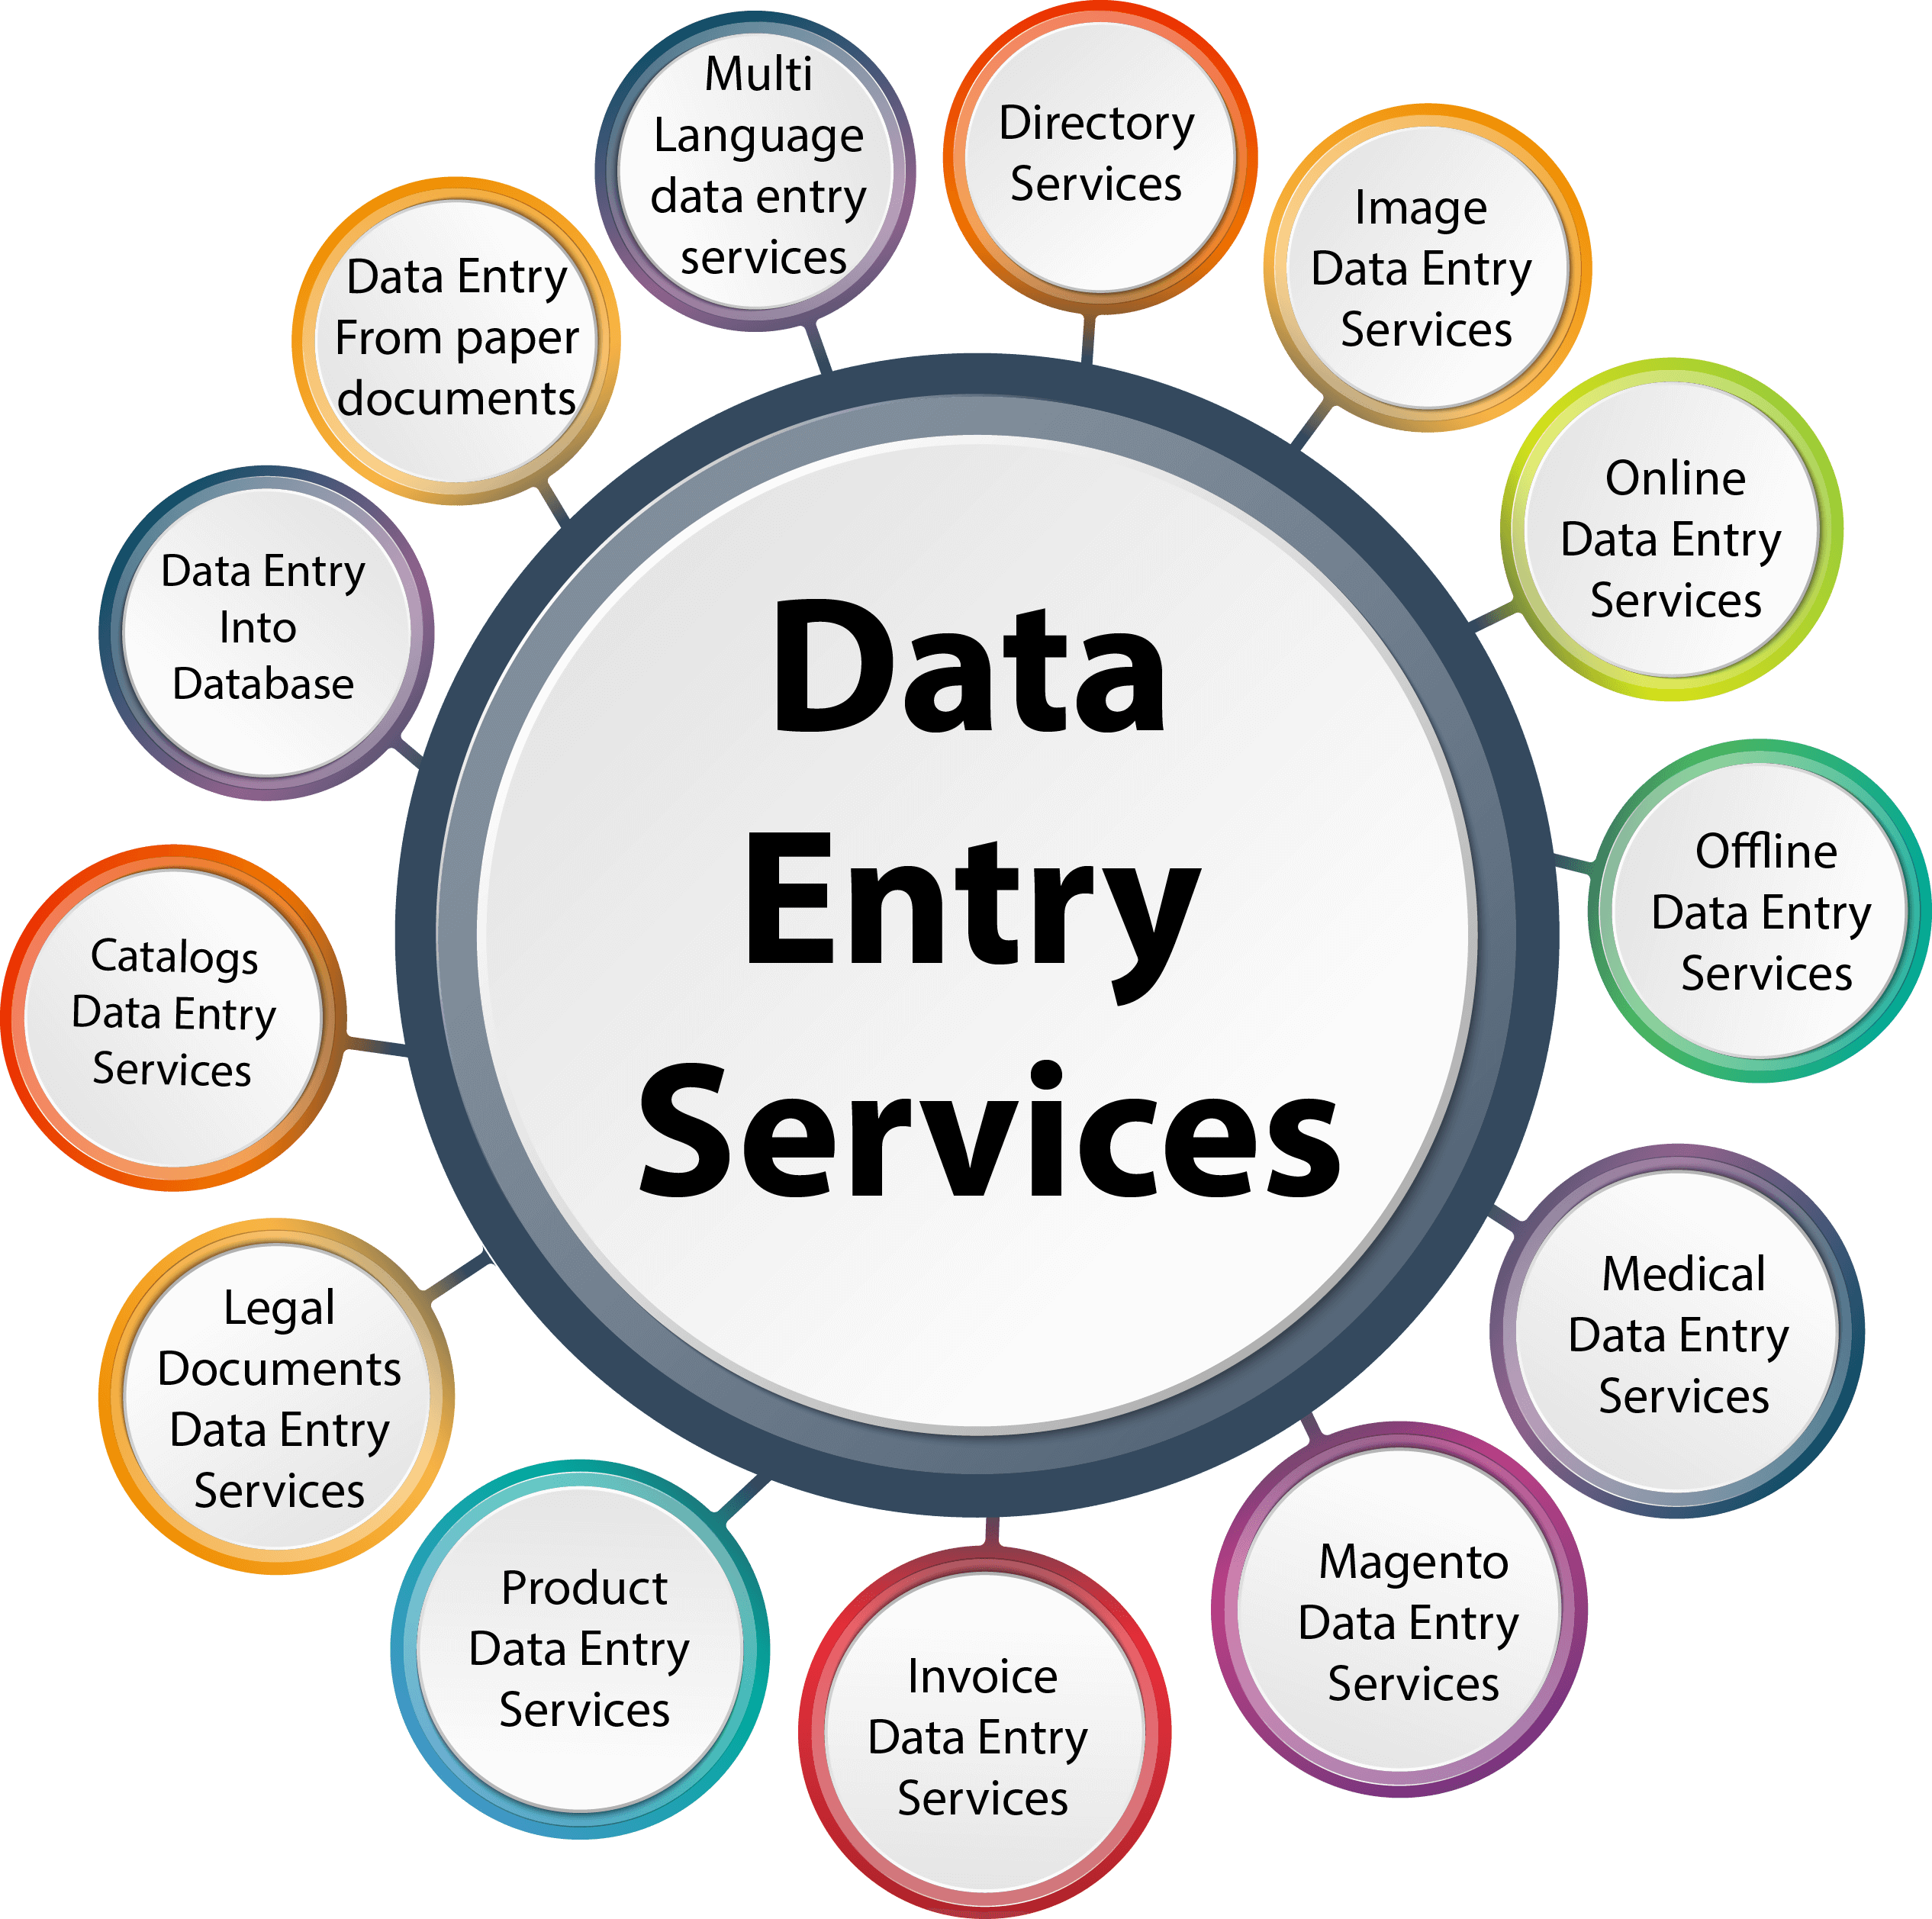 Do the content feeding or data entry